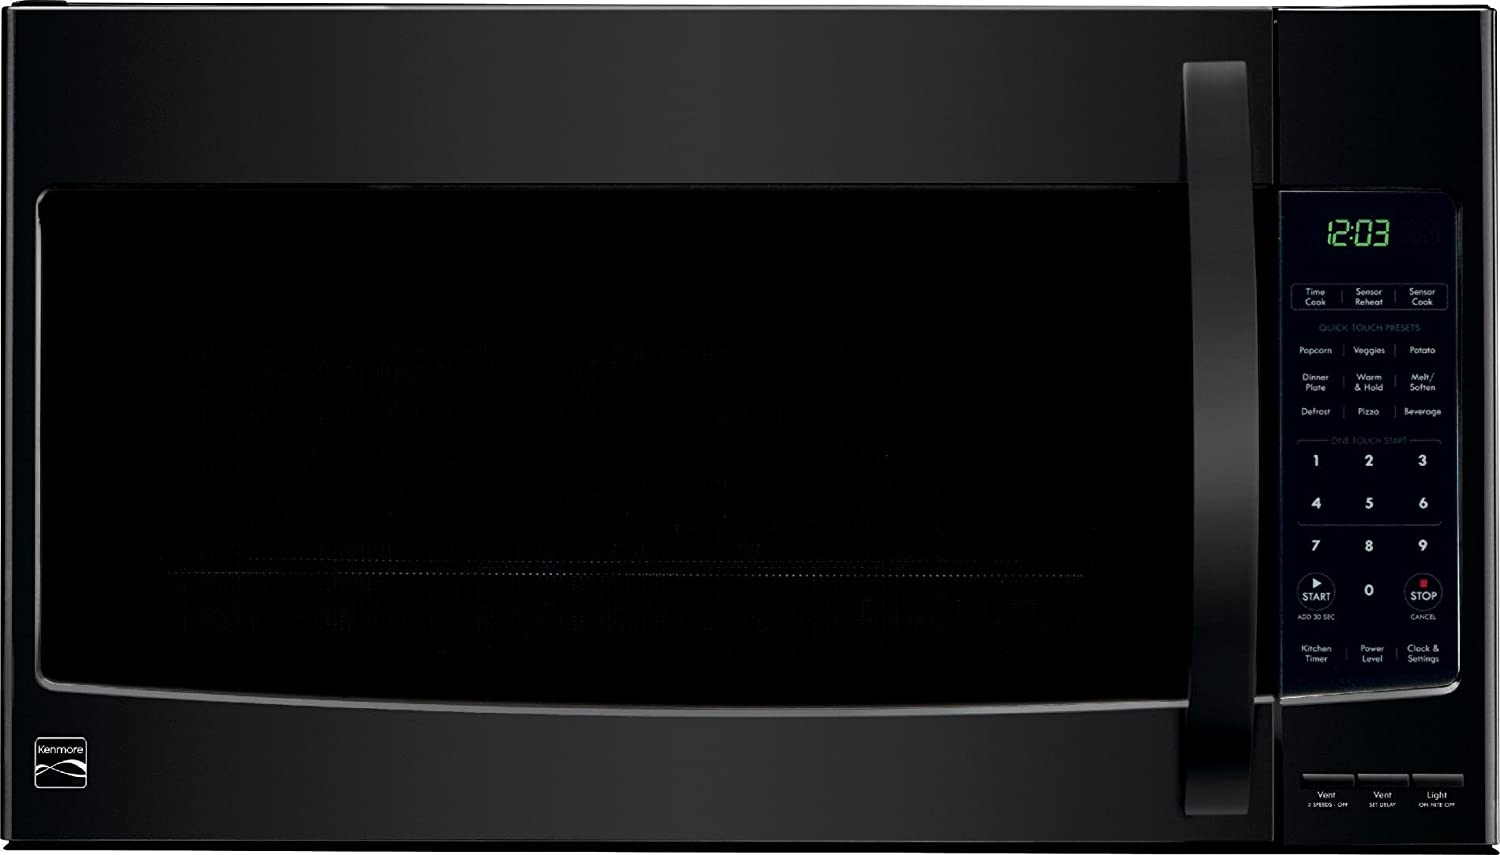 Kenmore Over the Range Microwave Hood Combination Oven 2.1 Cu. Ft. 1000 Watts Black 80359